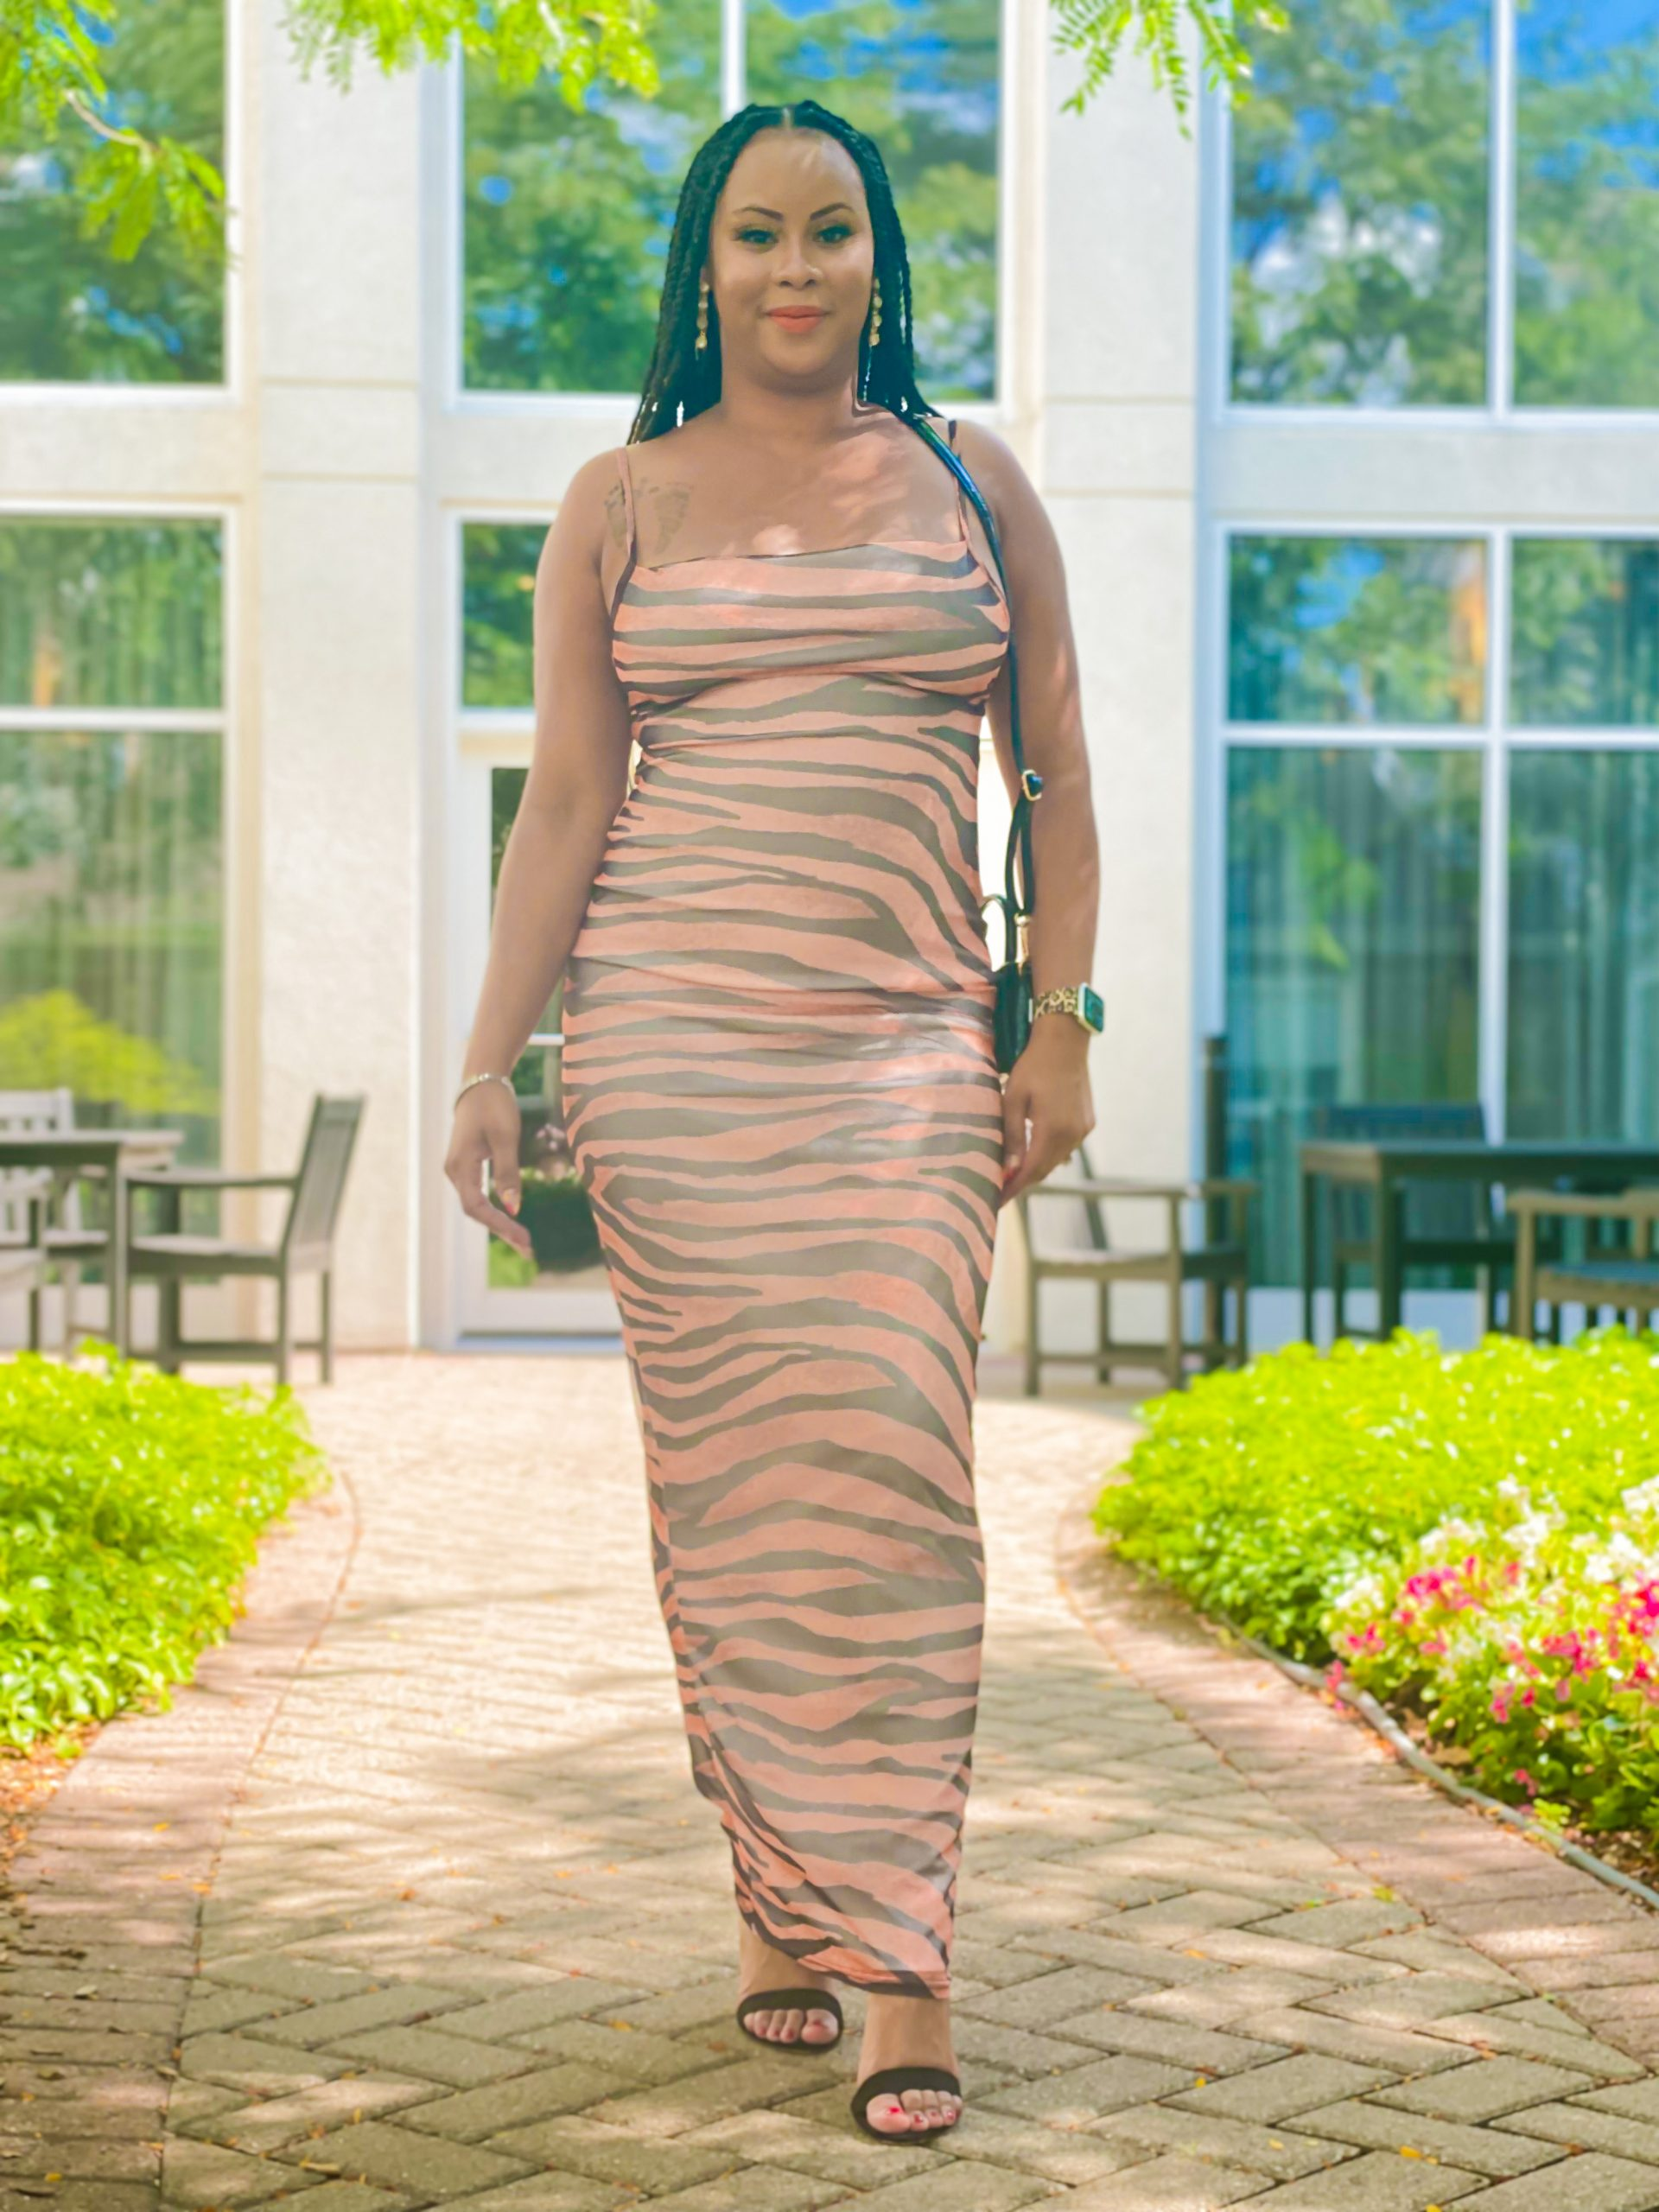 A black women in tiger mesh maxi dress, standing in front of glass building windows.